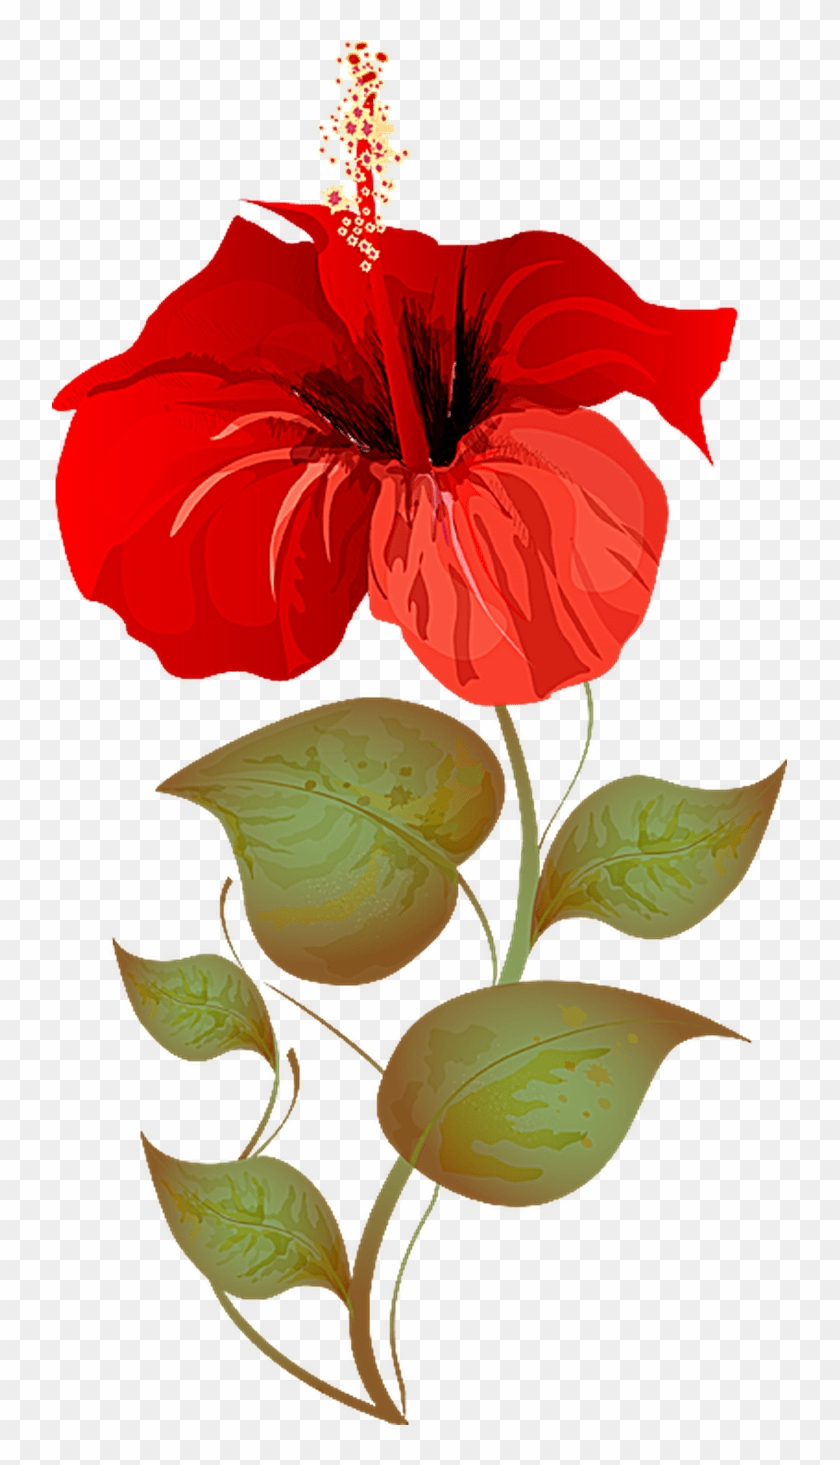 Craft Hibiscus Plant Clipart Free Transparent Png Clipart Images